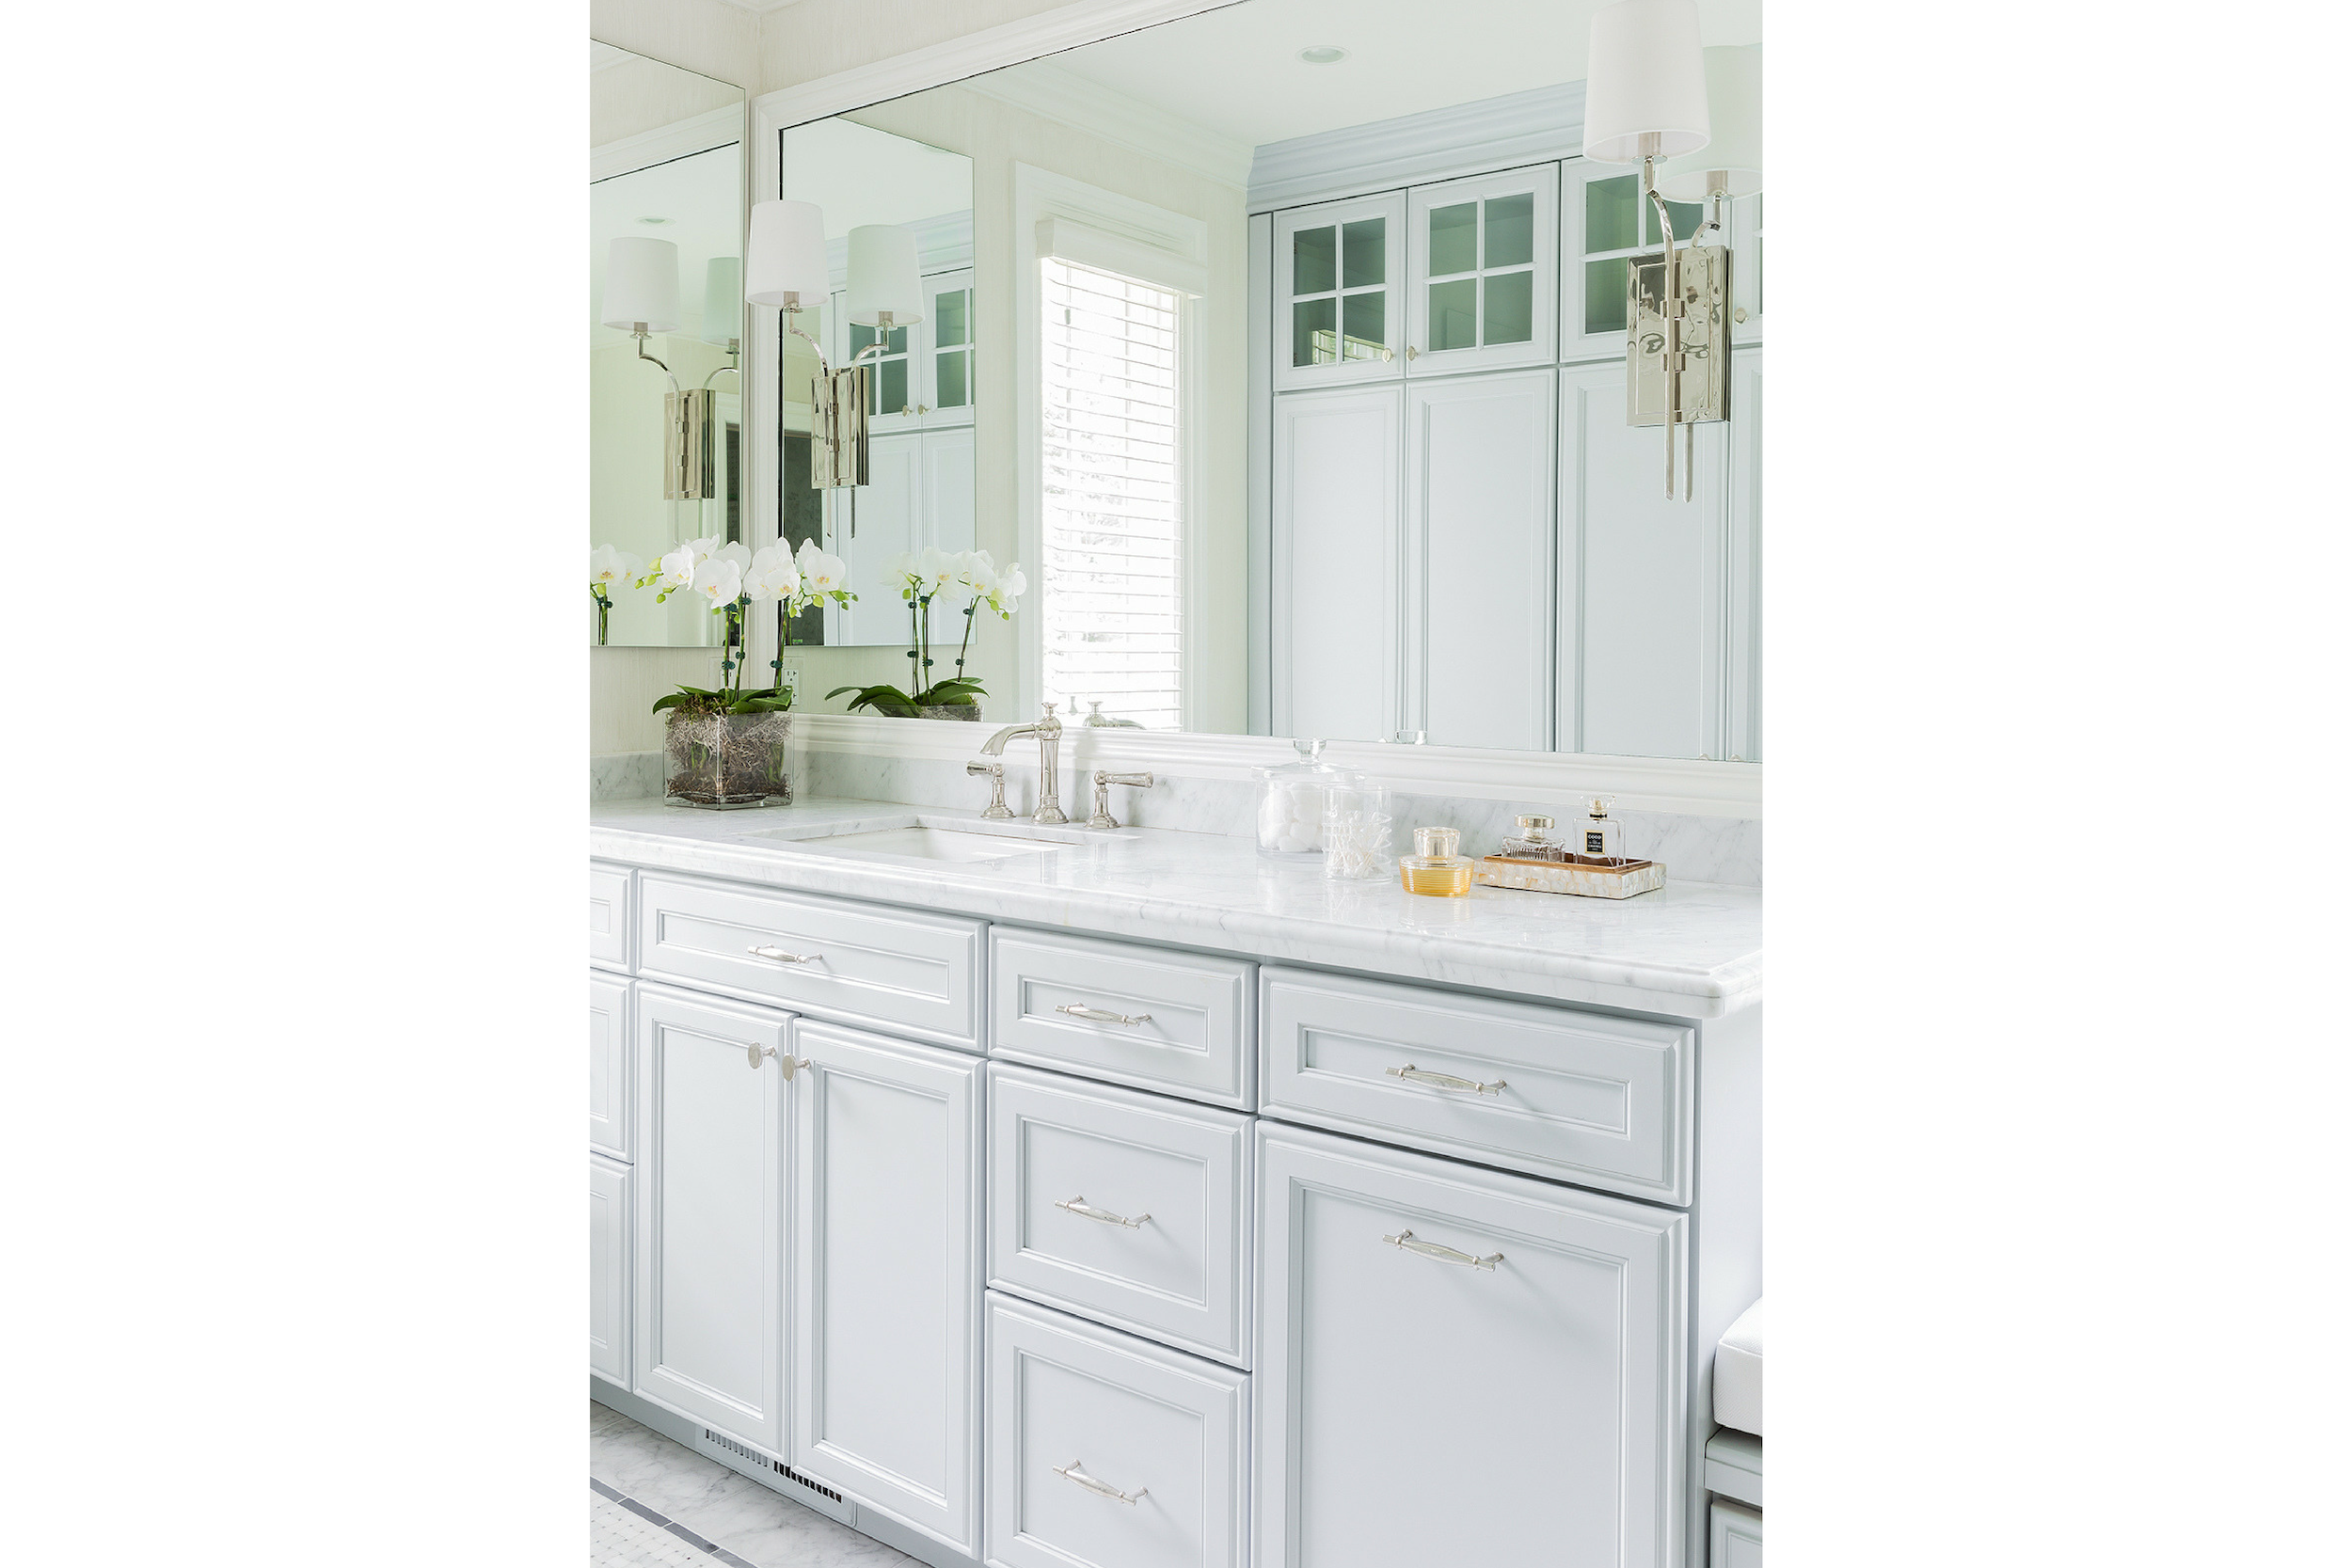 KitchenVisions-Hall-Guest-Baths-K8B0173.png